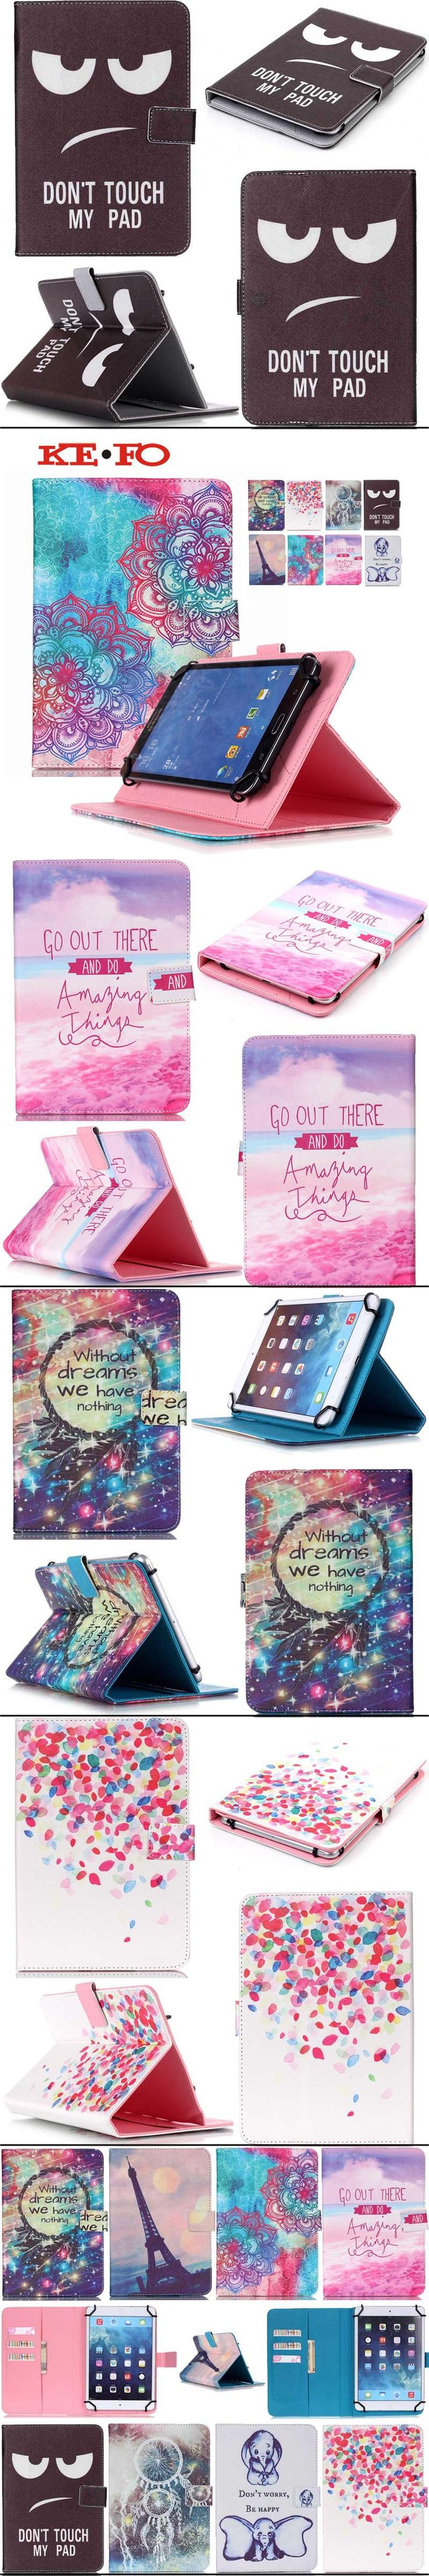 Print pattern Wallet universal 7 inch tablet leather case Stand Cover For Android Tablet PC PAD tablet 7 inch Accessories Y3d25D